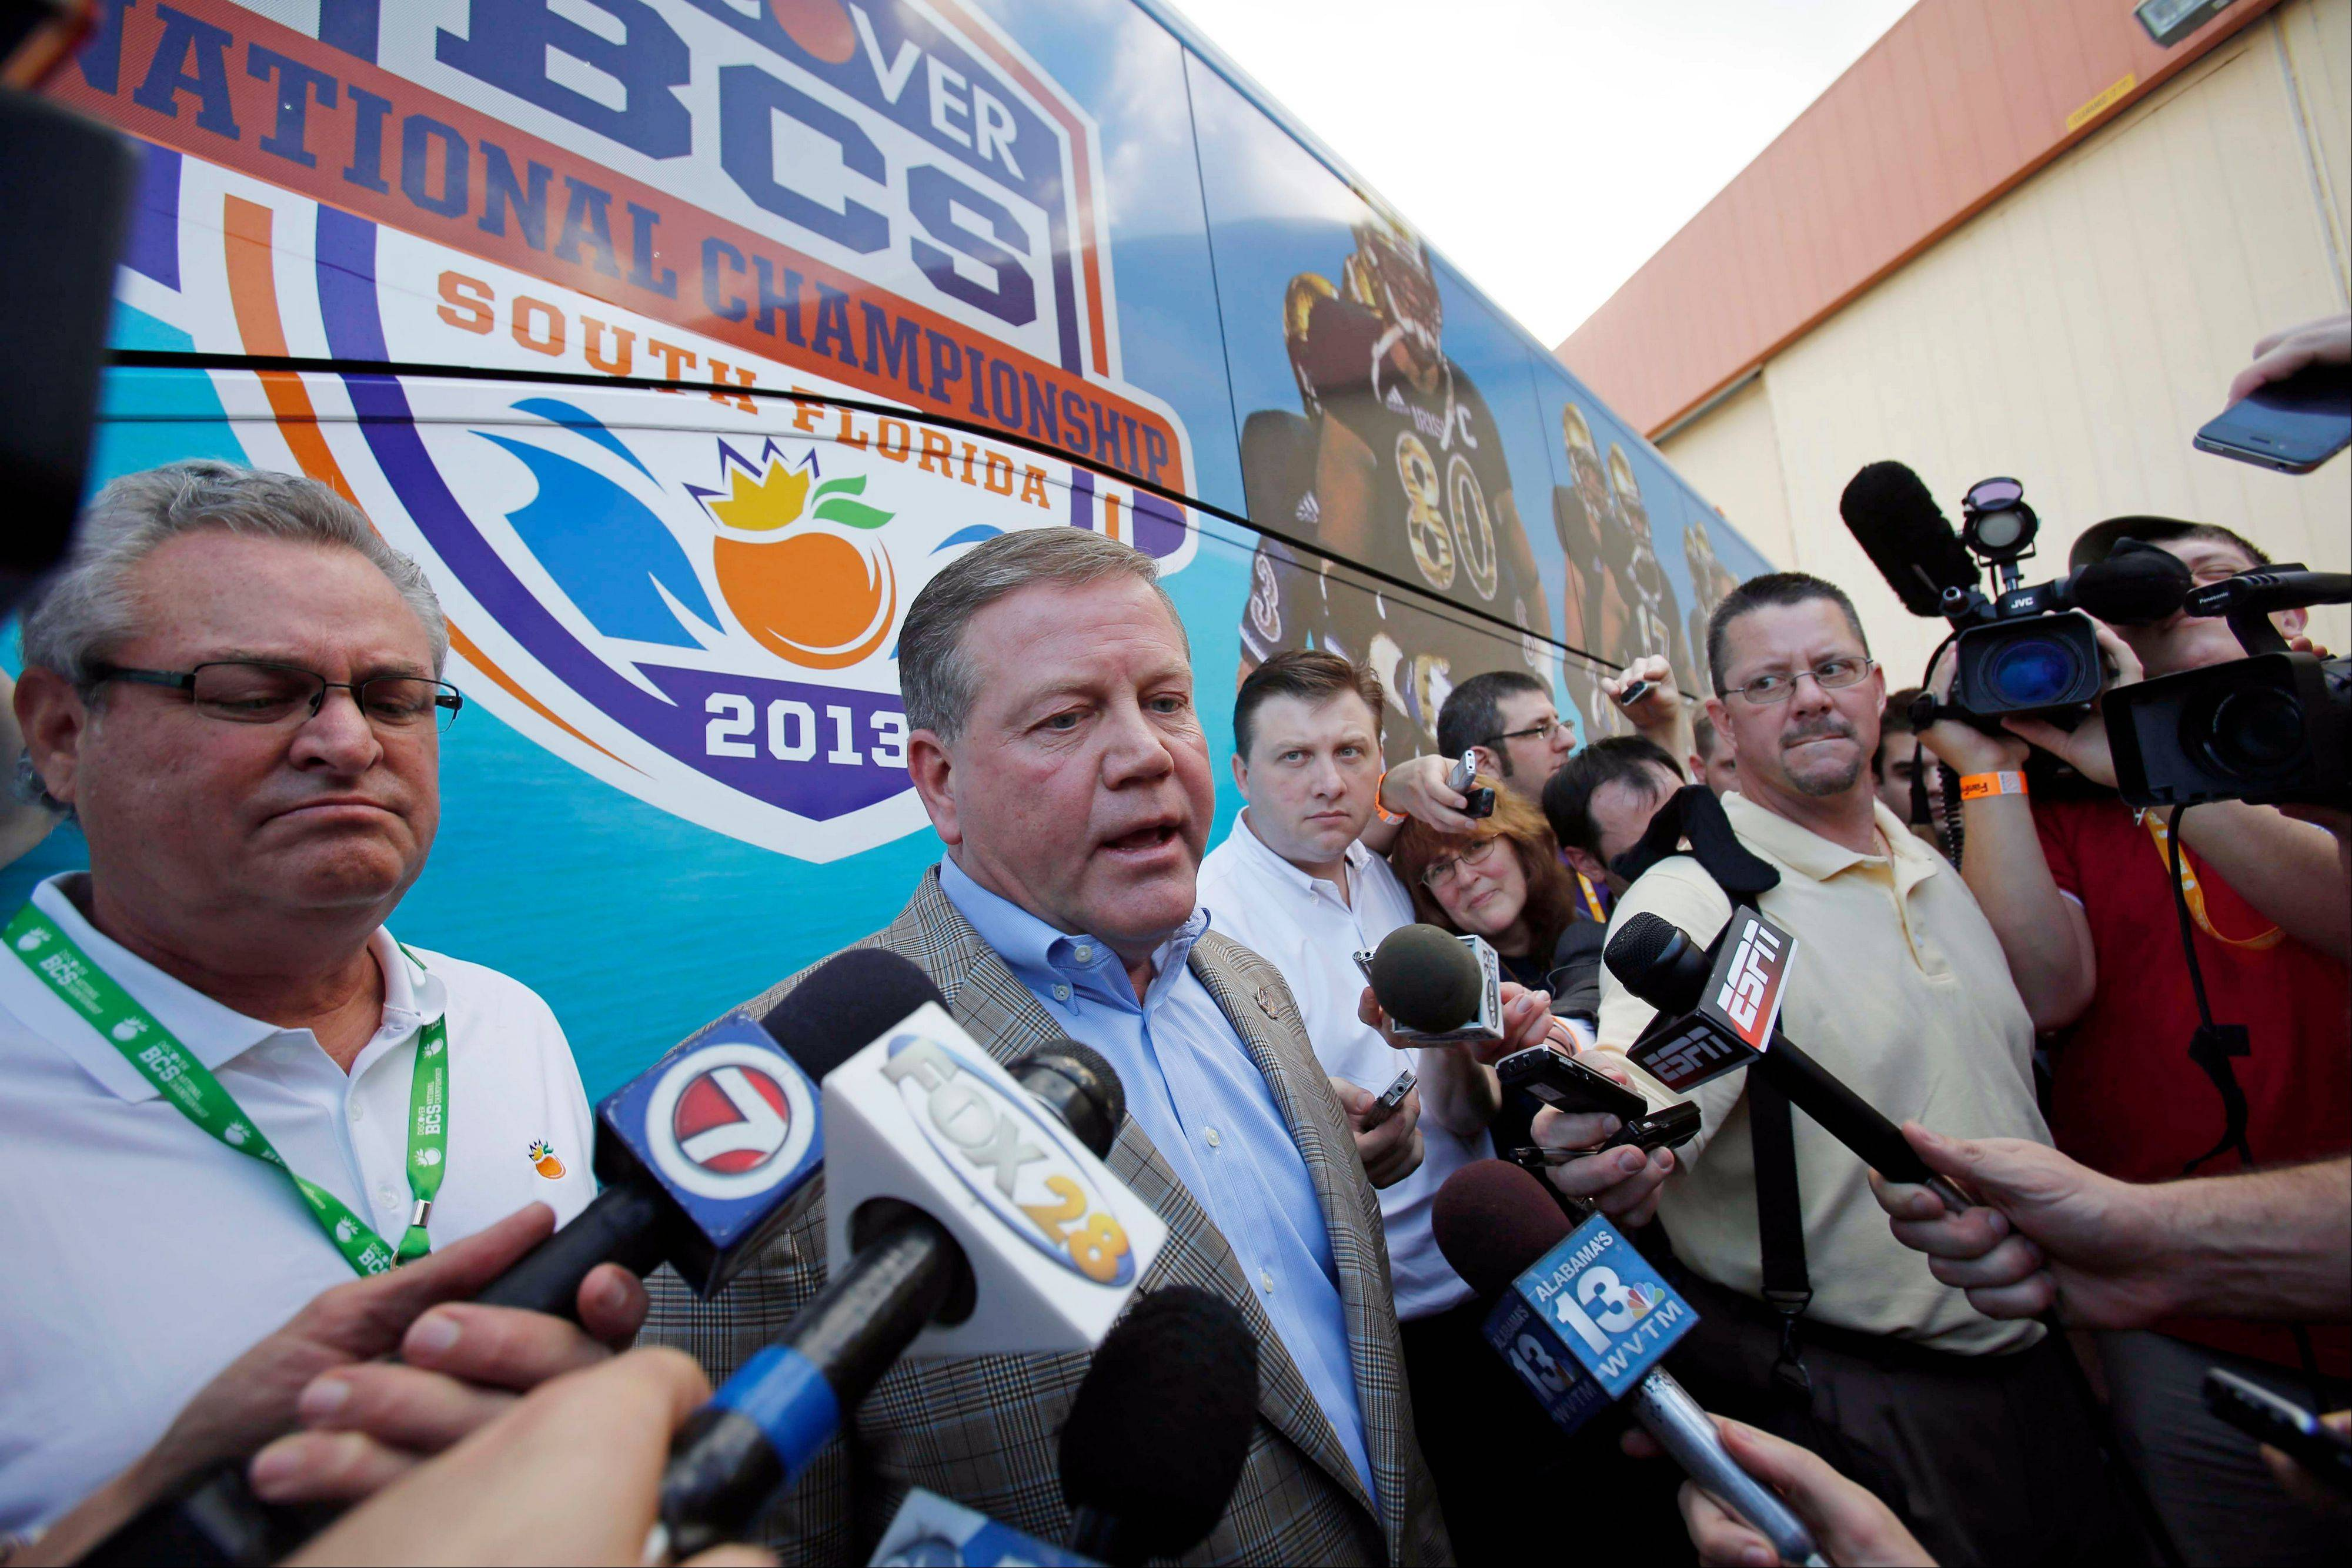 Notre Dame head coach Brian Kelly talks to reporters Wednesday after arriving in Fort Lauderdale, Fla. Notre Dame takes on Alabama in the BCS national championship game next Monday in Miami.